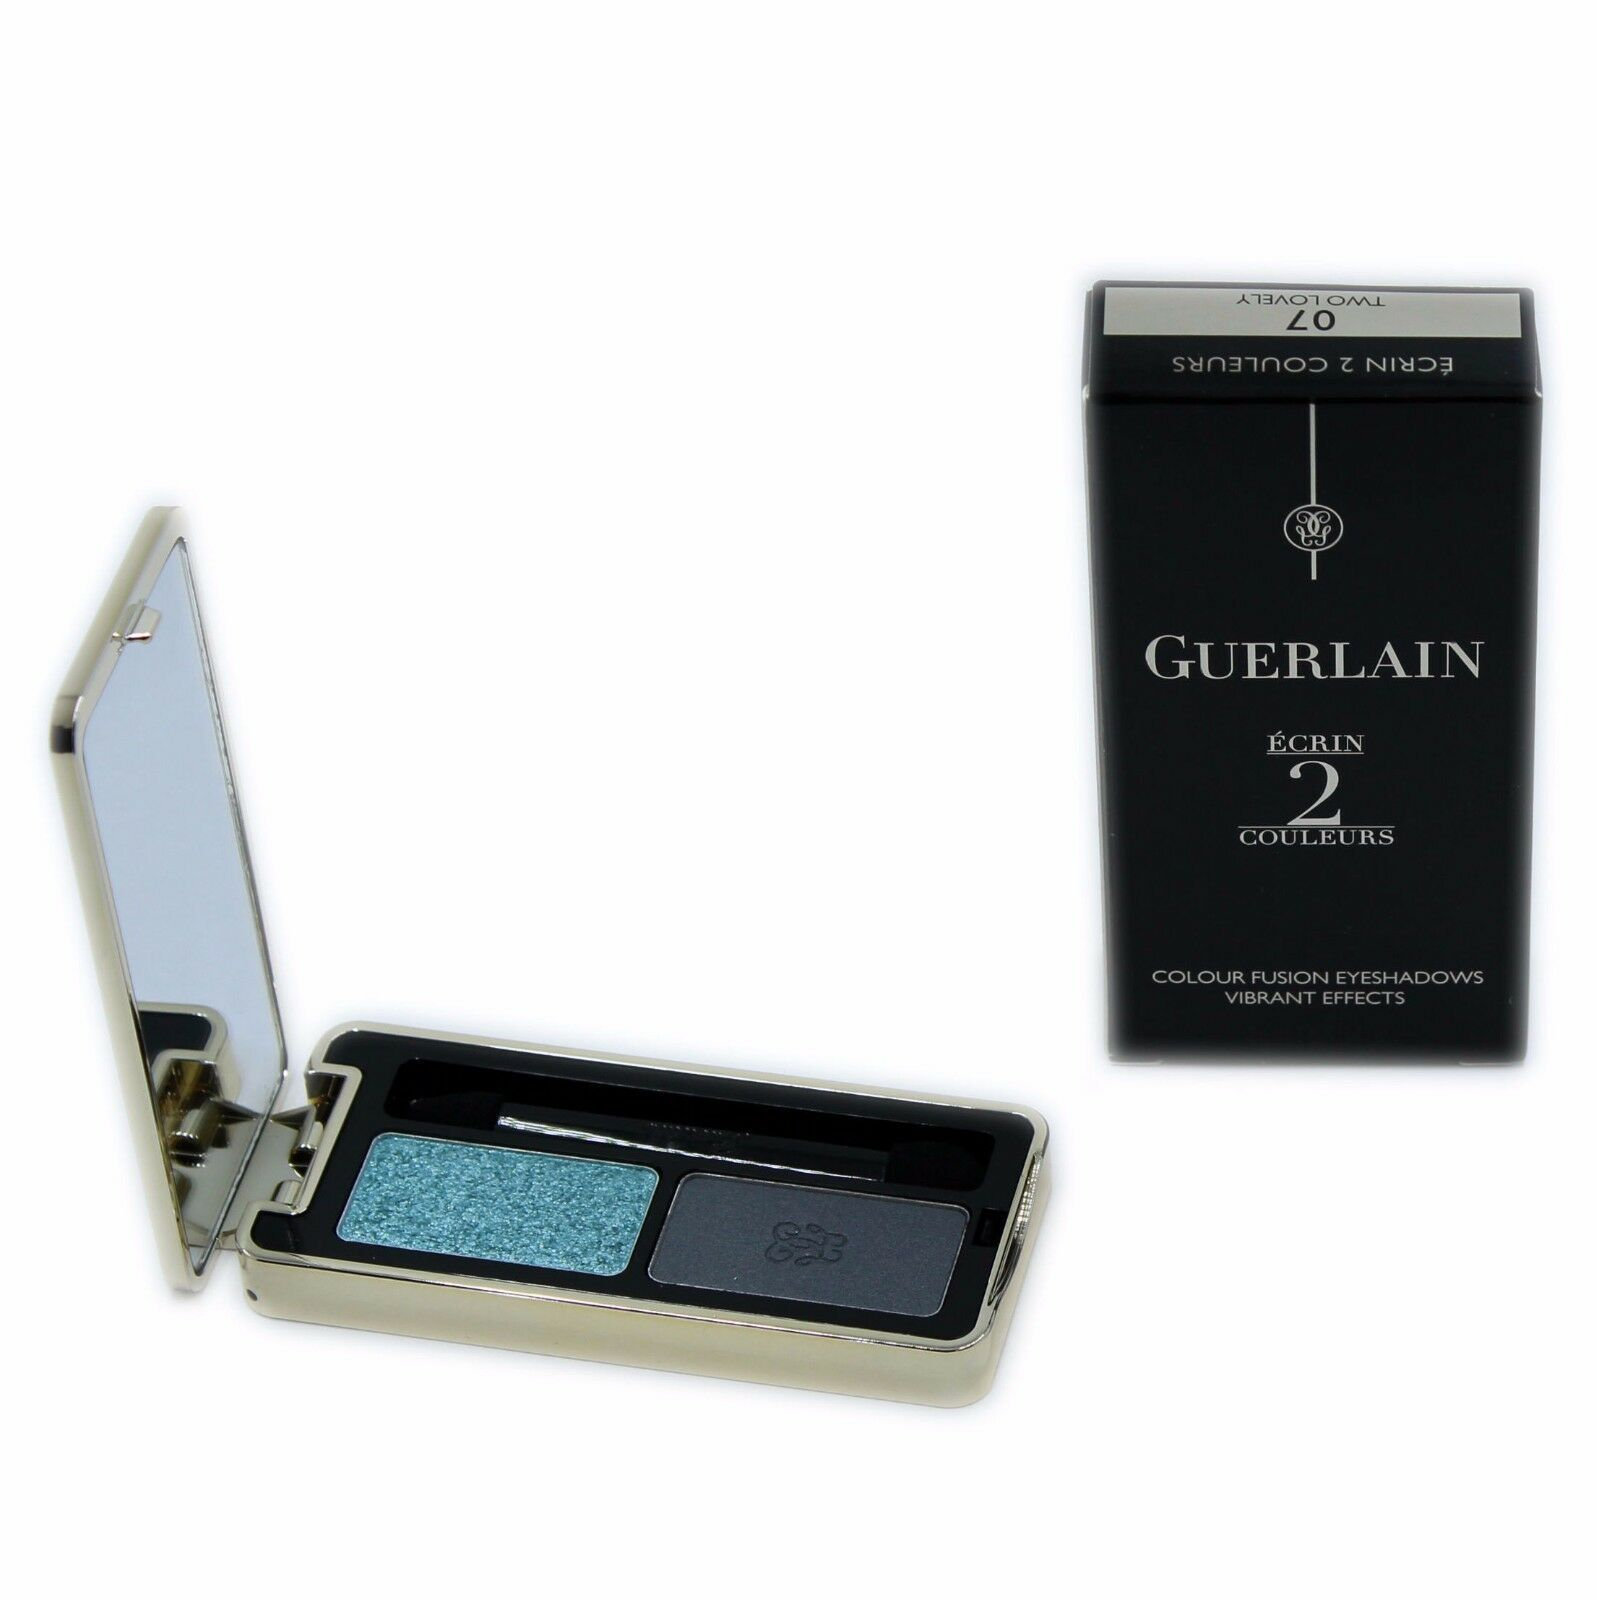 Primary image for GUERLAIN ECRIN 2 COULEURS COLOUR FUSION EYESHADOWS EFFETS VIBRANTS 4G #07-G41393